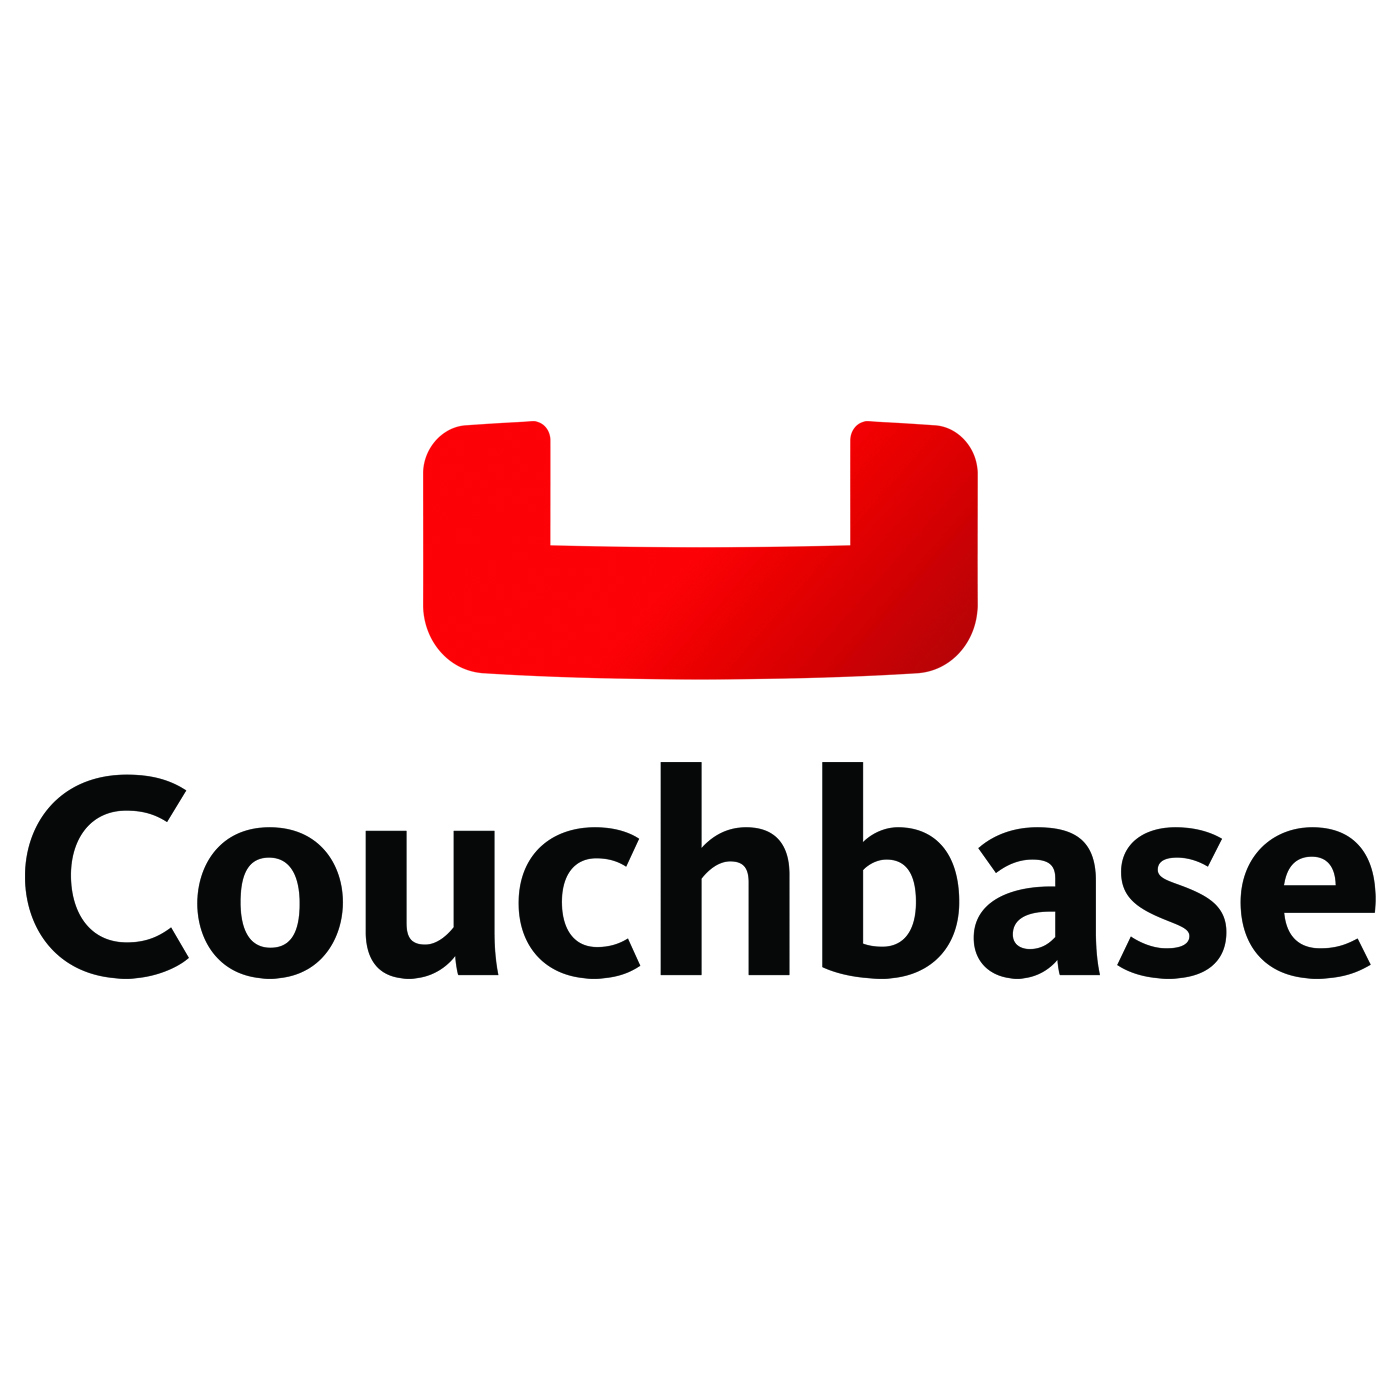 Couchbase Inc.